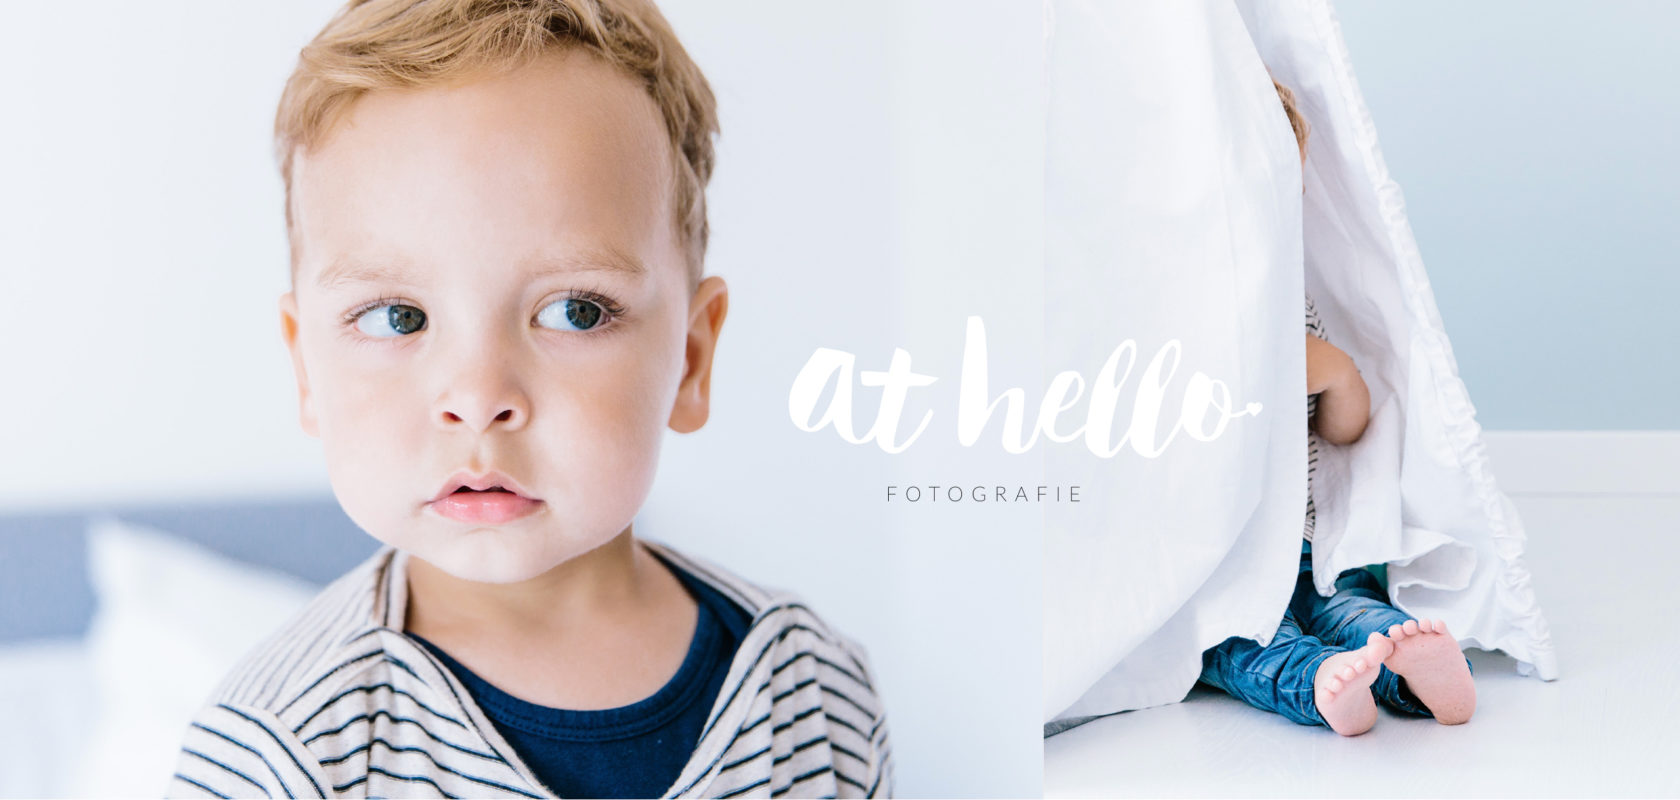 At hello fotografie | newbornshoot | familyshoot